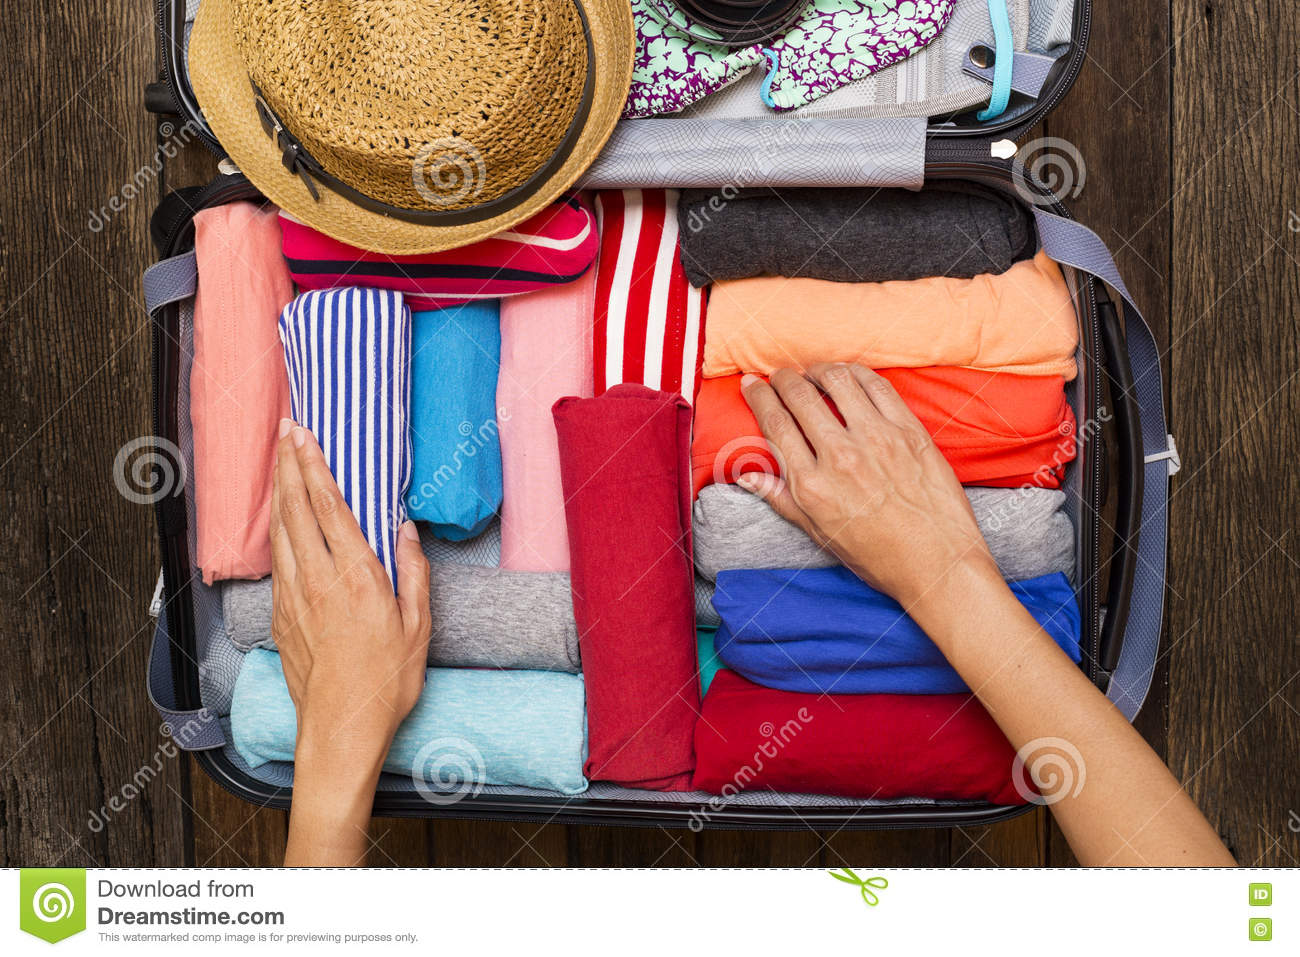 Woman packing a luggage for a new journey